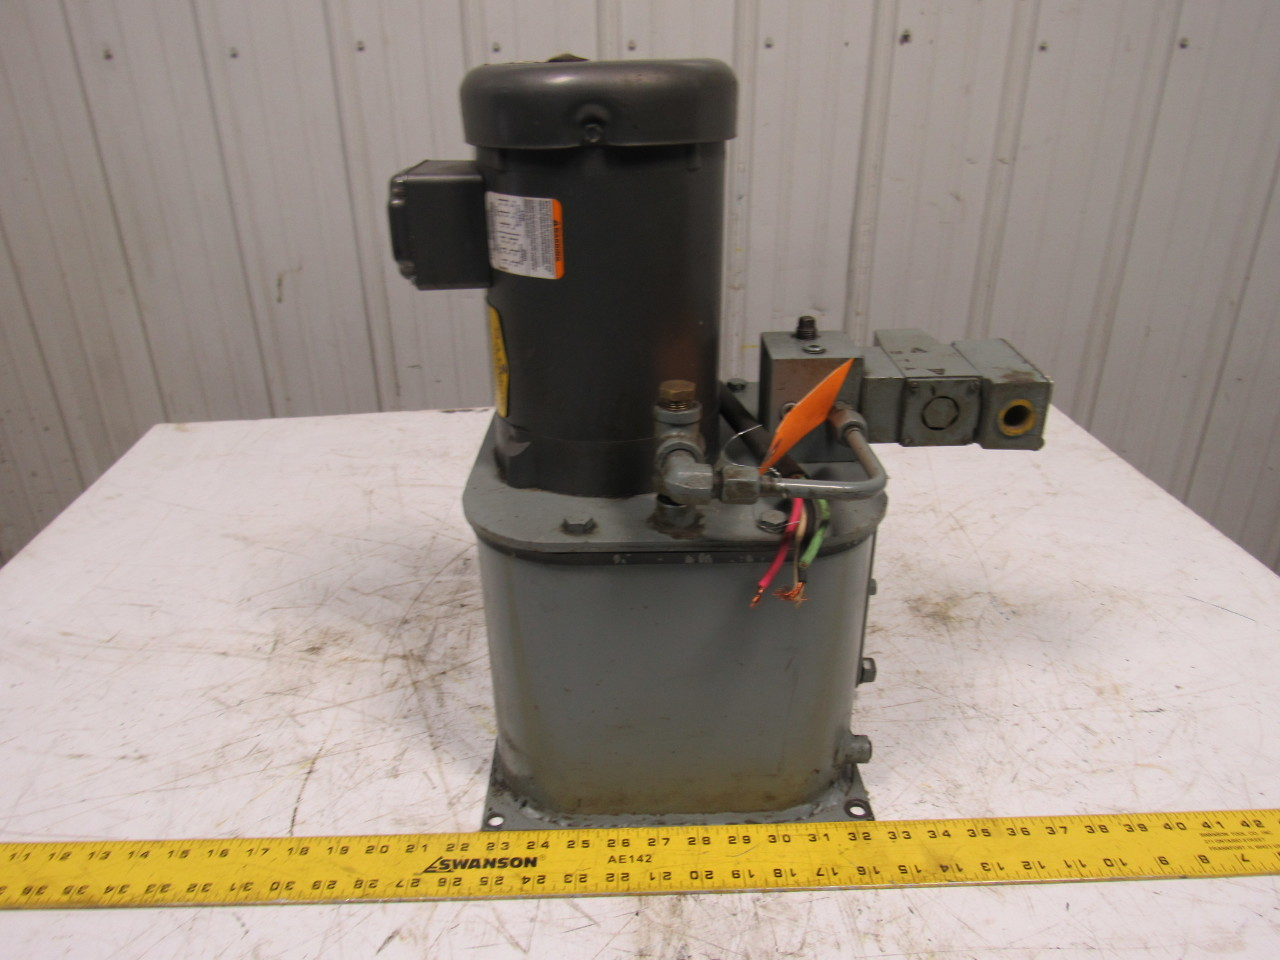 Circuitpak Double A Hydraulic Power Unit W/1/2Hp Baldor Motor 230/460V 3 Ph